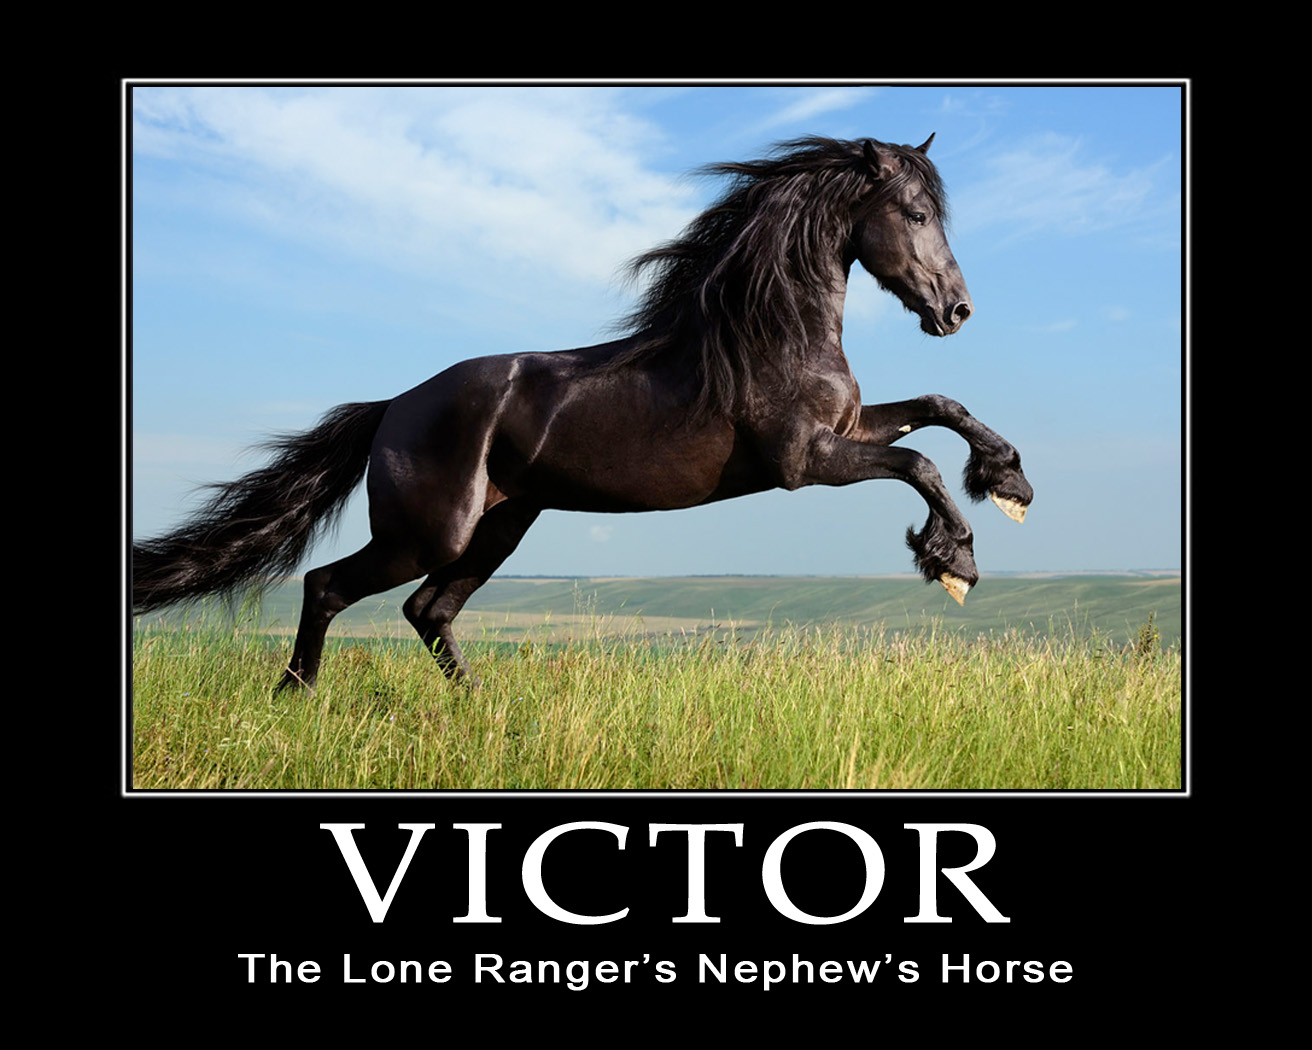 The Lone Ranger's Nephew's Horse (Fake Motivational Poster)